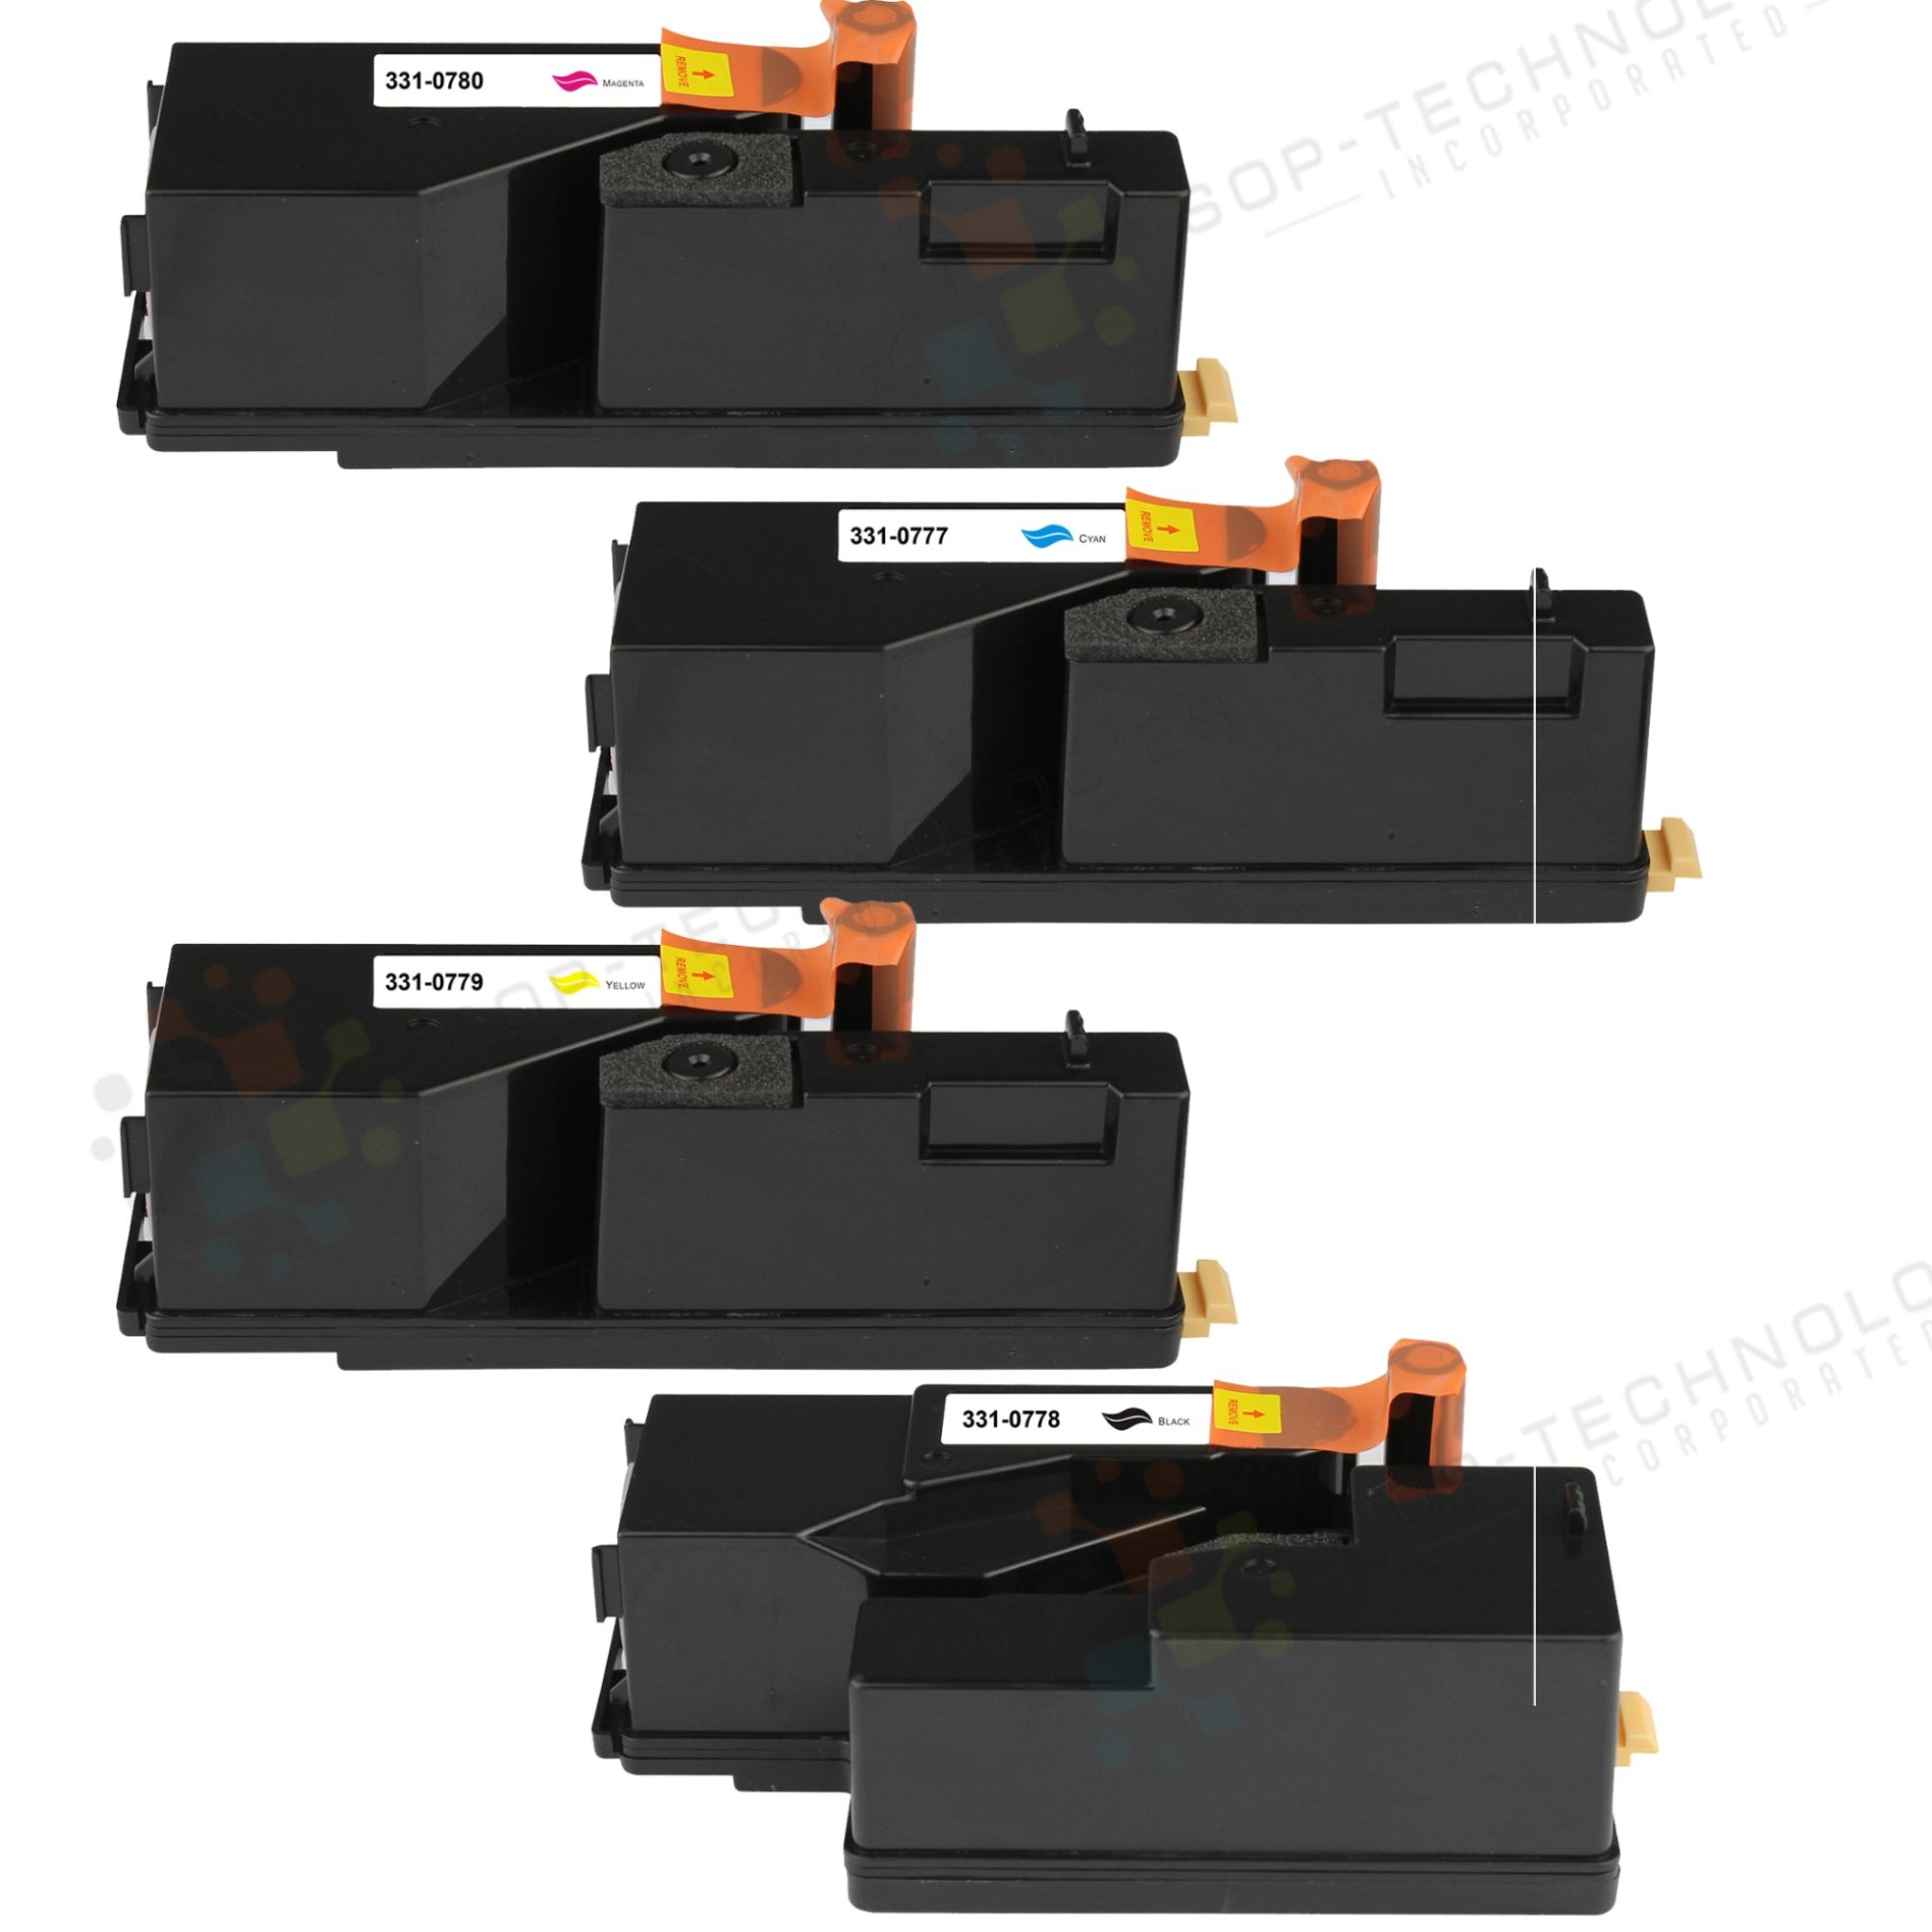 4 Pack Toner Cartridges Replacement for Dell 1250C - SOP-TECHNOLOGIES, INC.